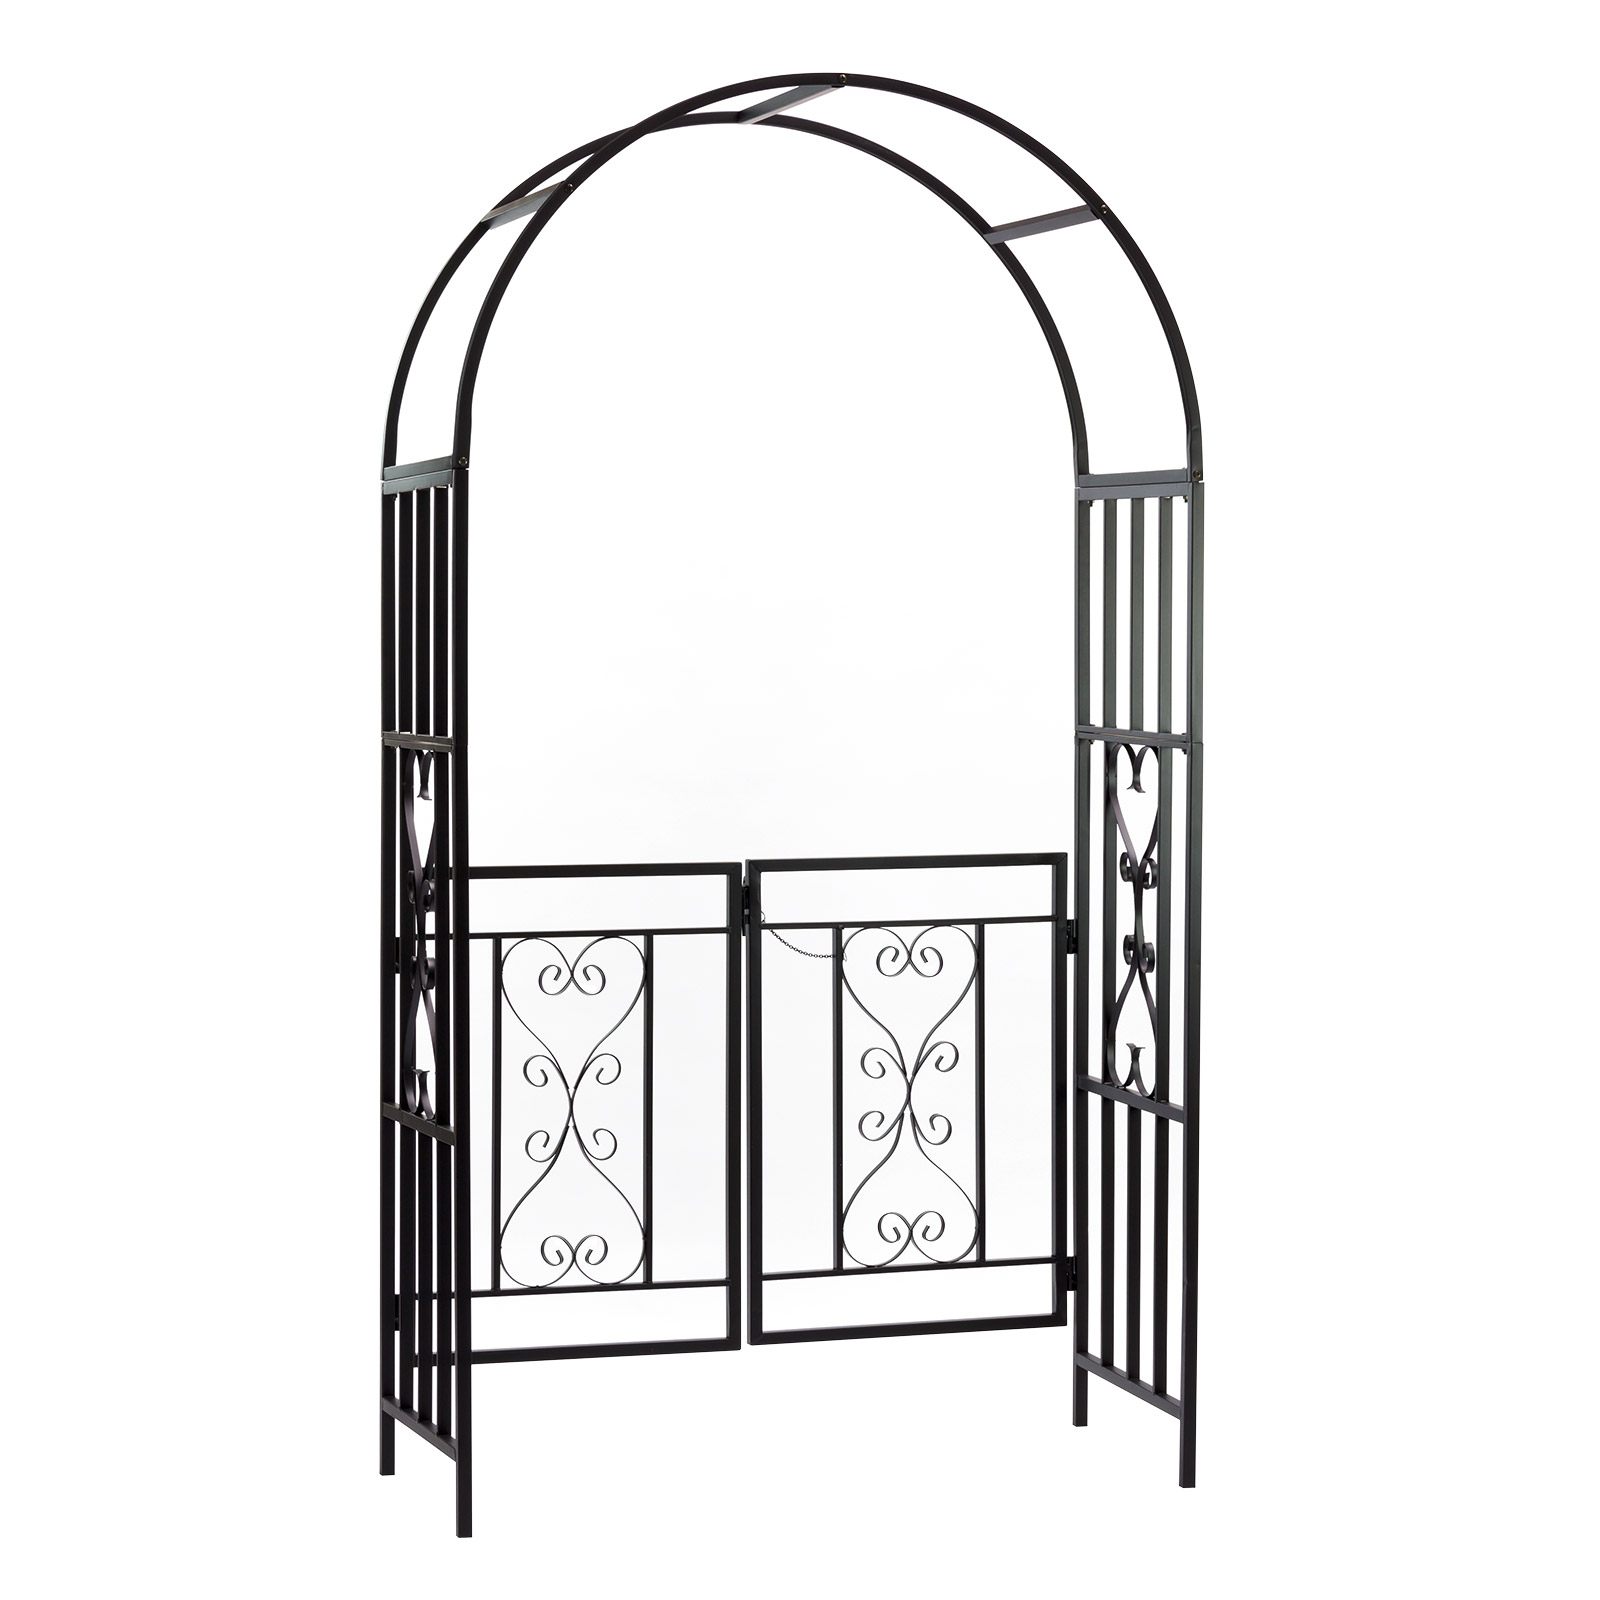 metall rosenbogen spalier rankgitter pergola rankhilfe rankgitter dover 14246 ebay. Black Bedroom Furniture Sets. Home Design Ideas